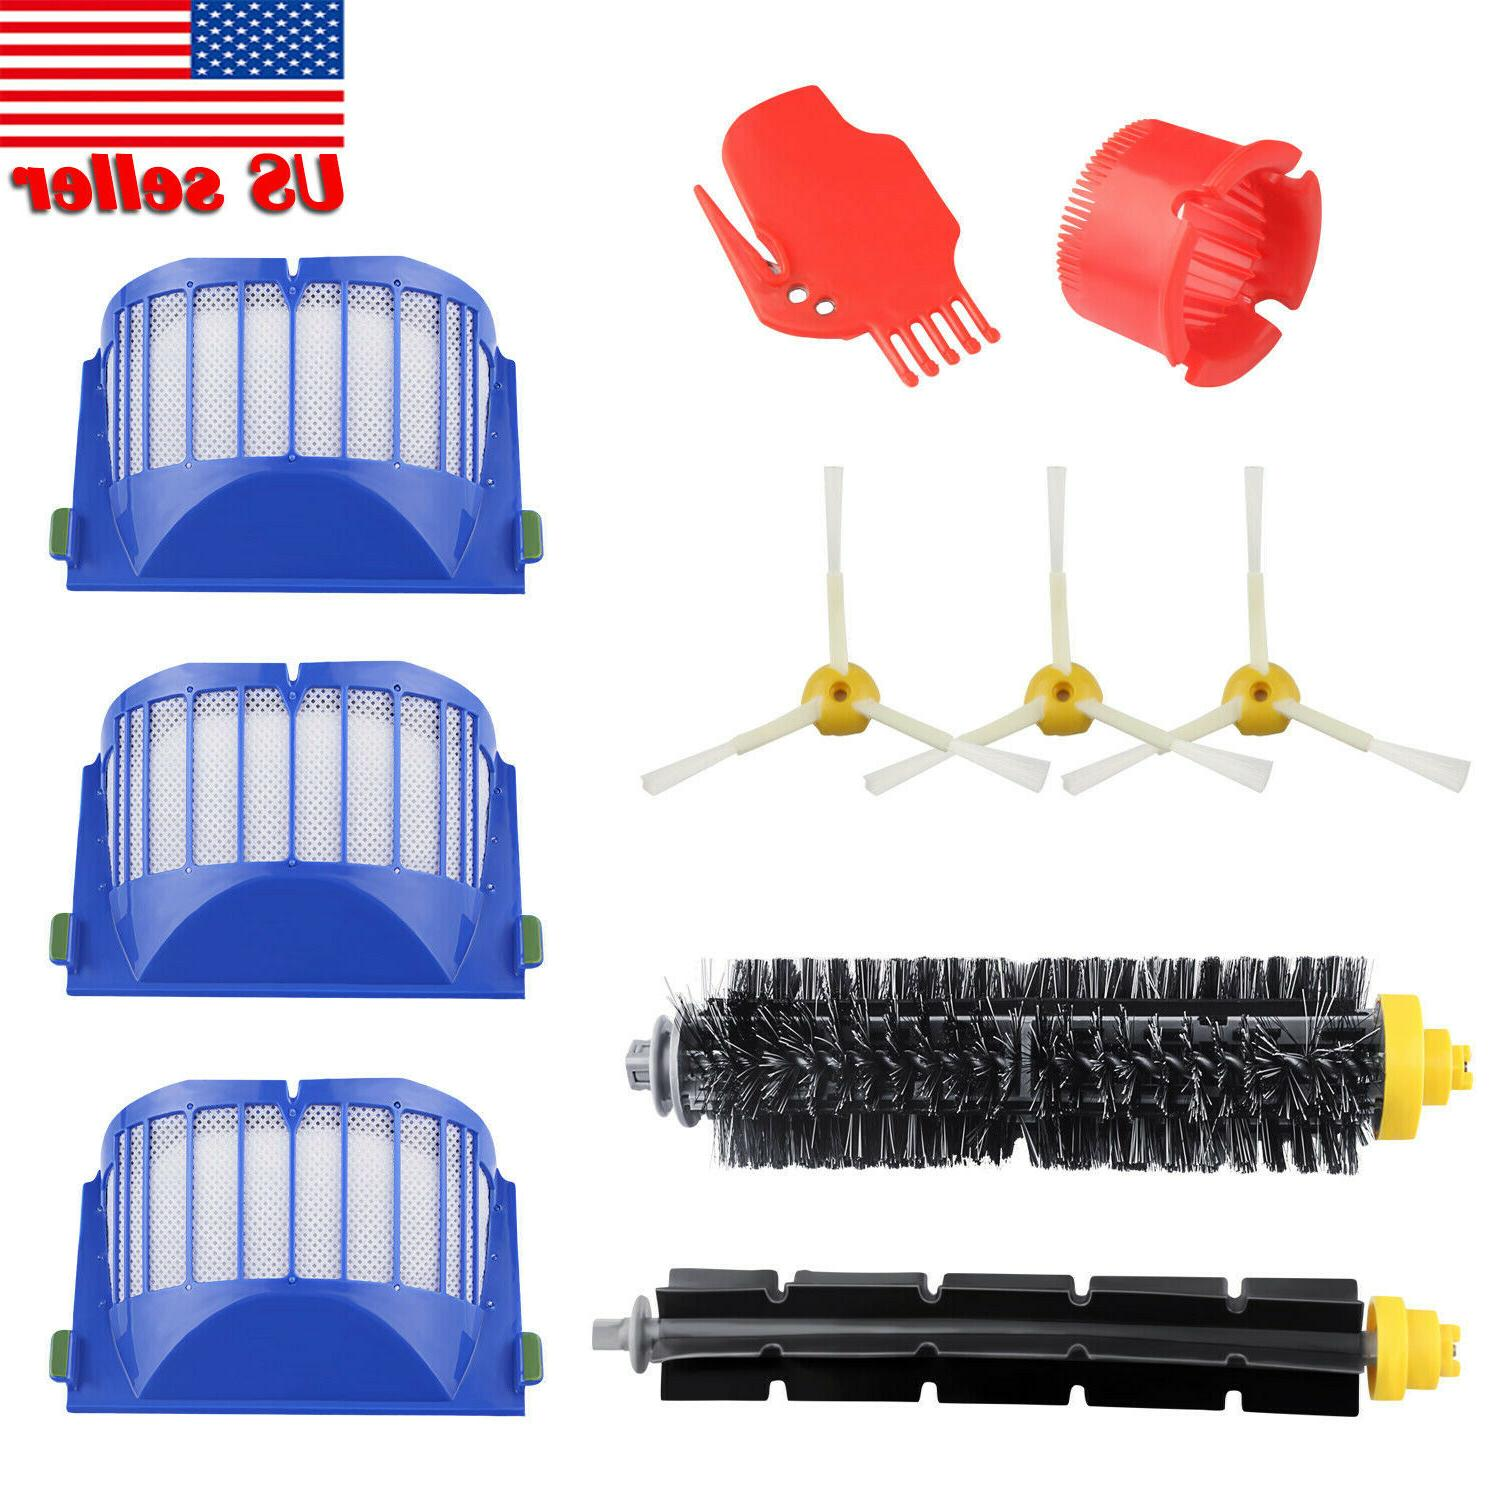 replacement parts kit for irobot roomba 600